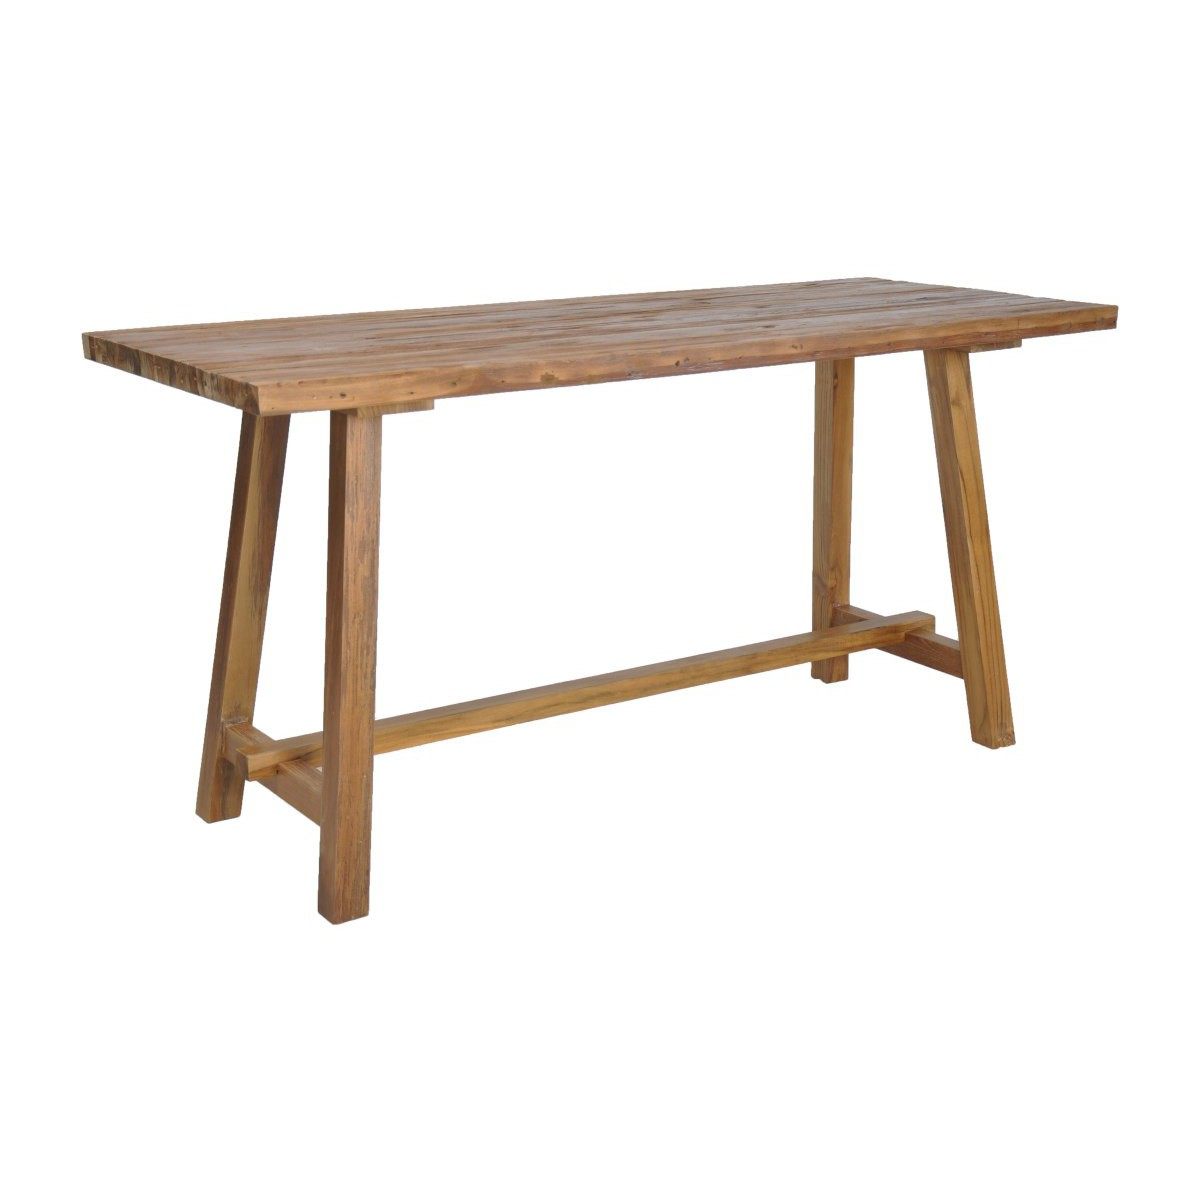 Tropica Magno Commercial Grade Reclaimed Teak Timber Workshop Desk, 160cm